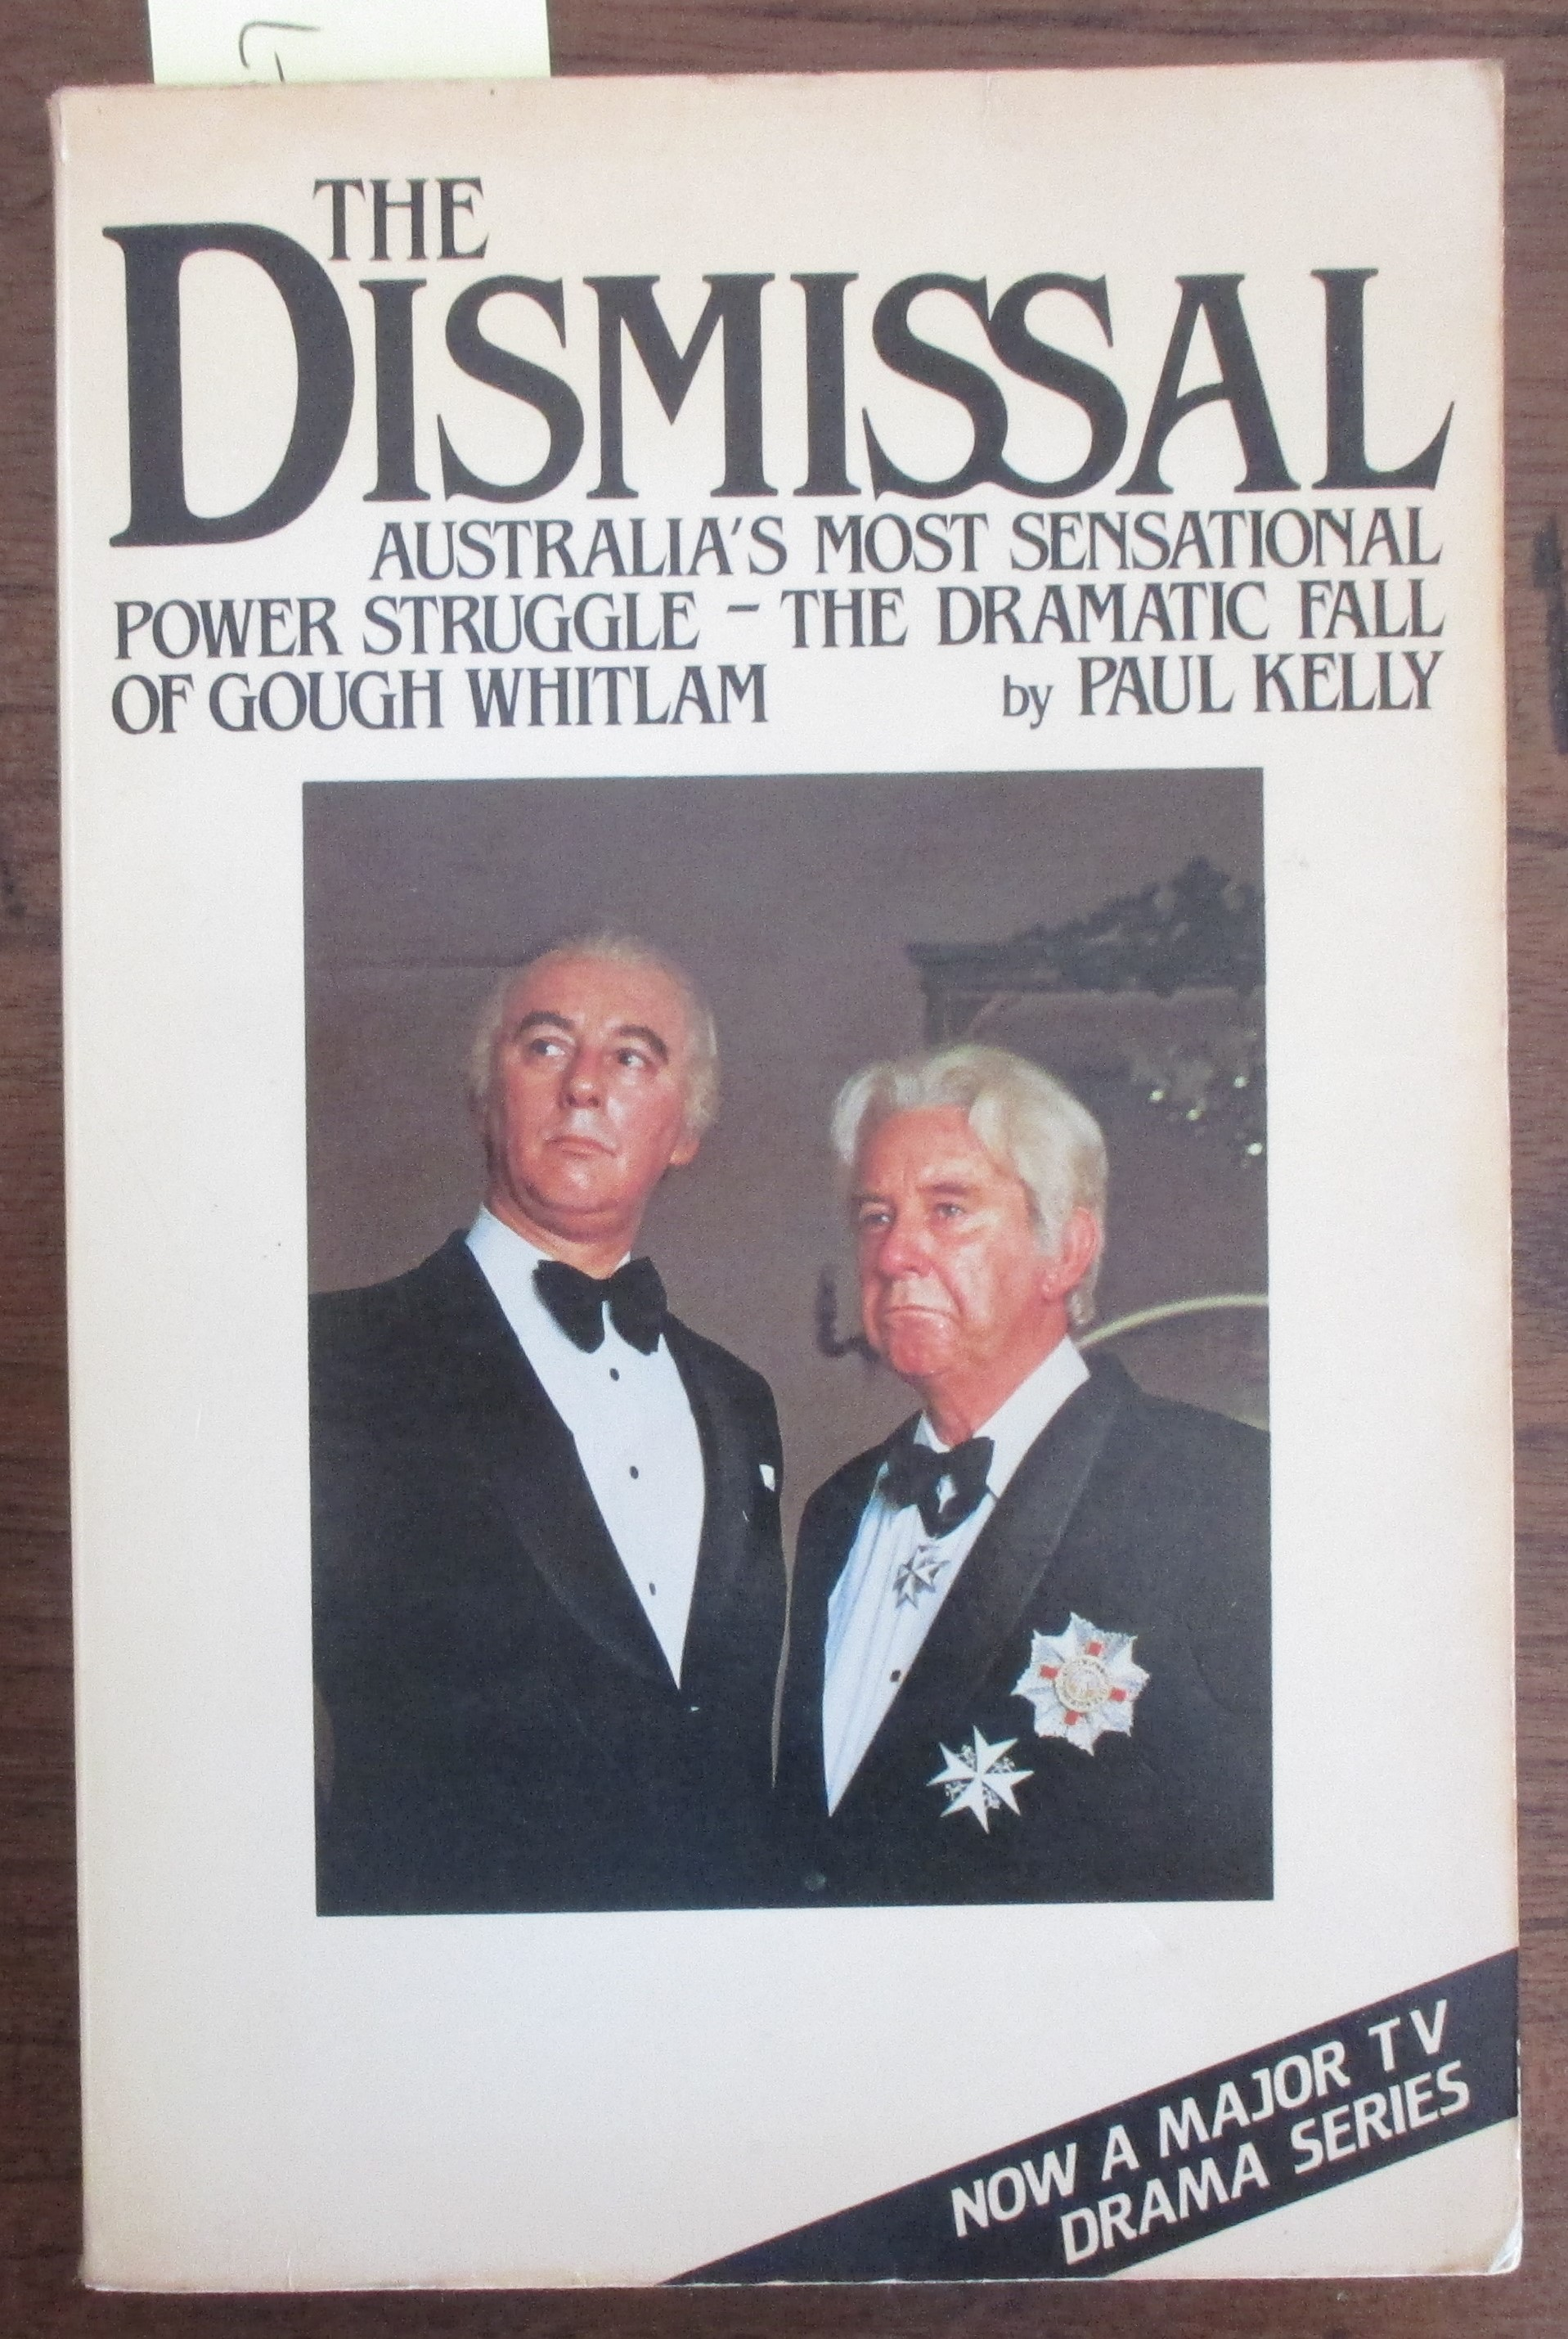 Image for Dismissal, The: Australia's Most Sensational Power Struggle - The Dramatic Fall of Gough Whitlam